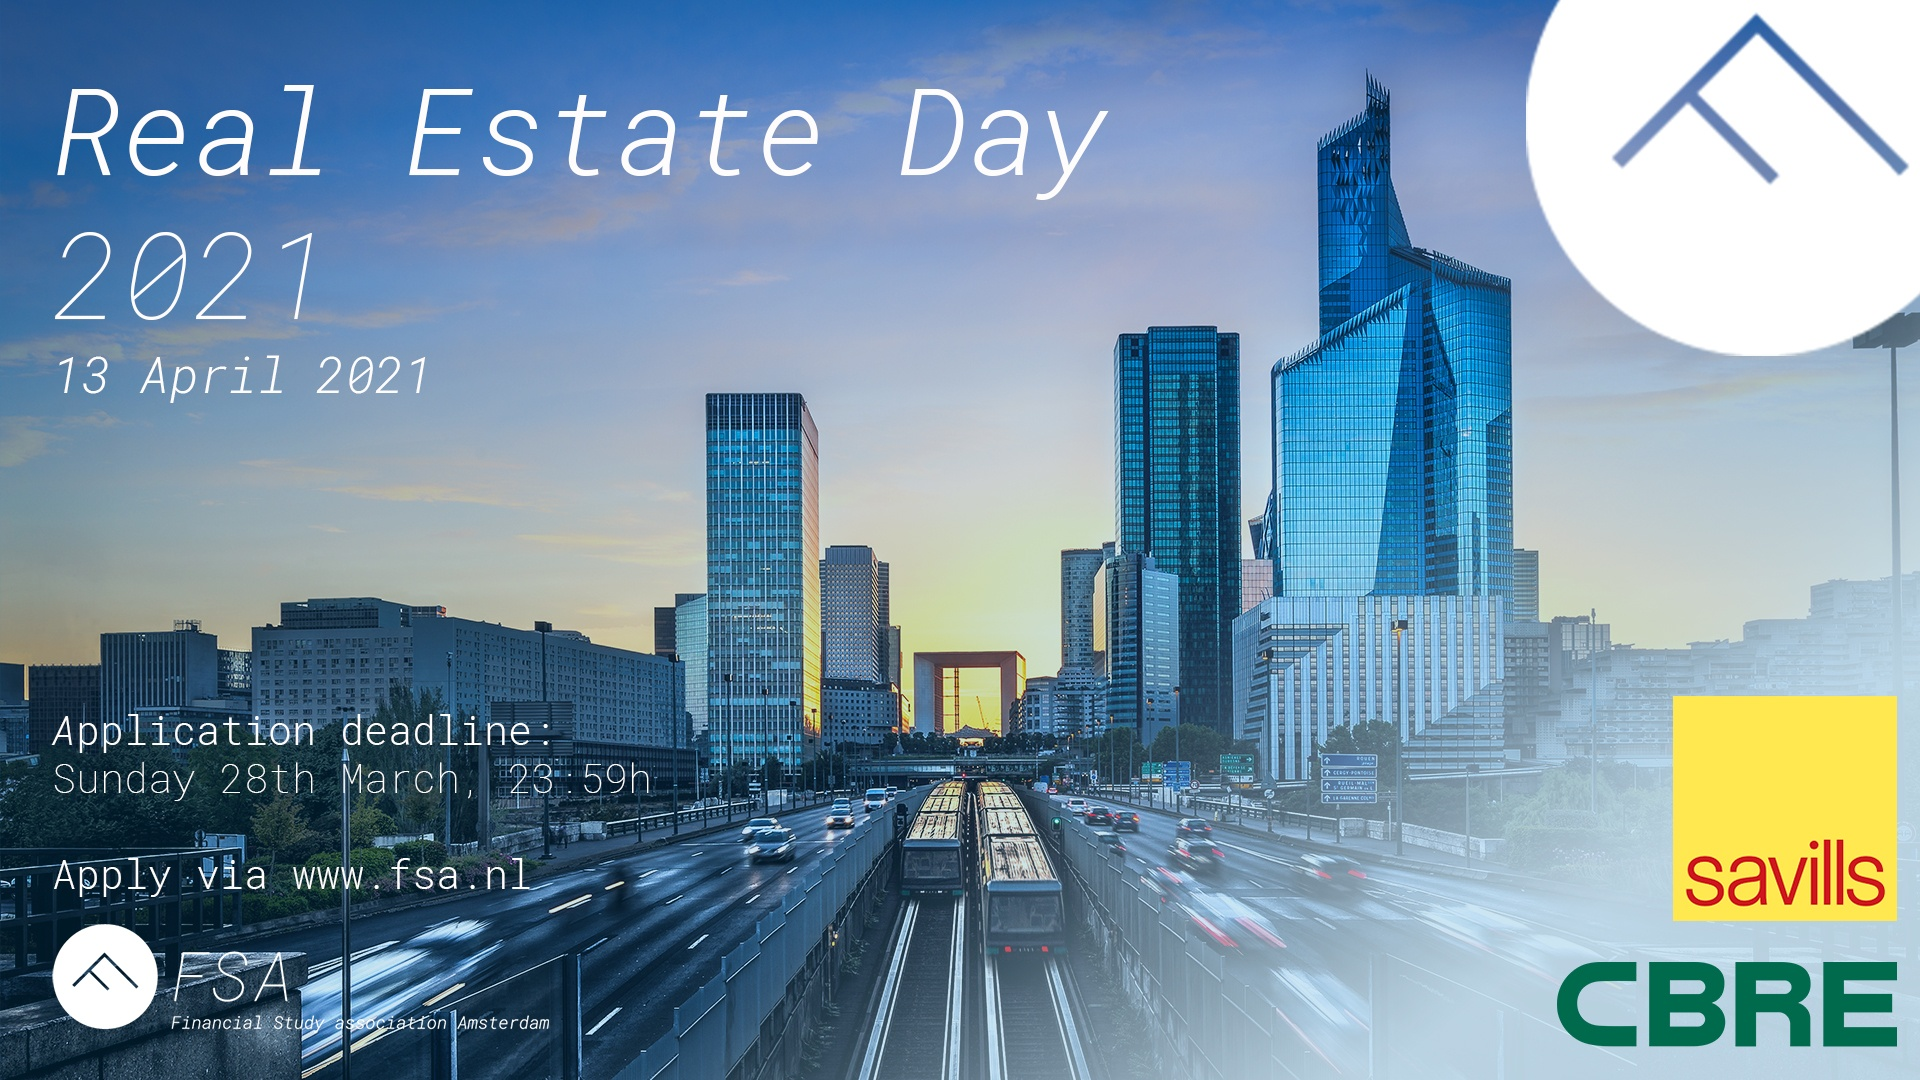 Real Estate Day Promotie